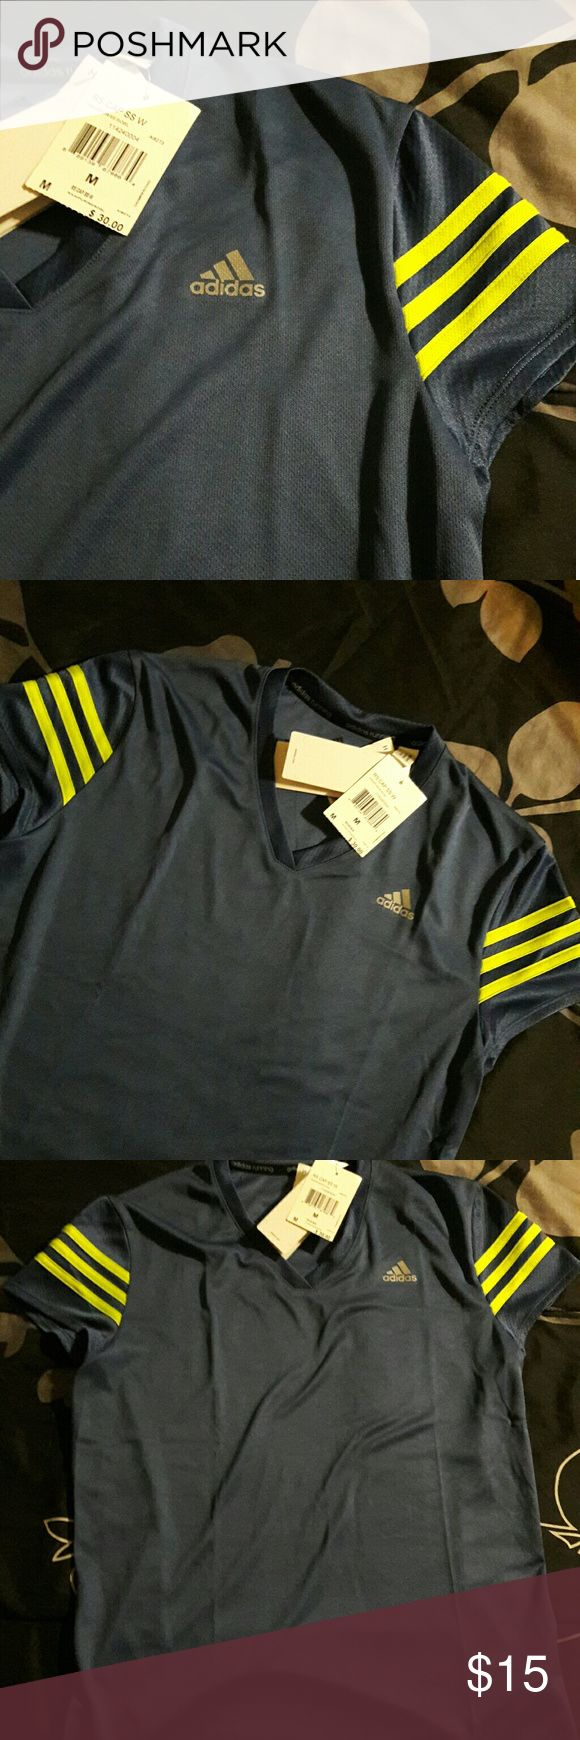 NWT Adidas workout shirt Blue-gray shirt with bright yellow lines Perfect for gym/running Adidas Tops